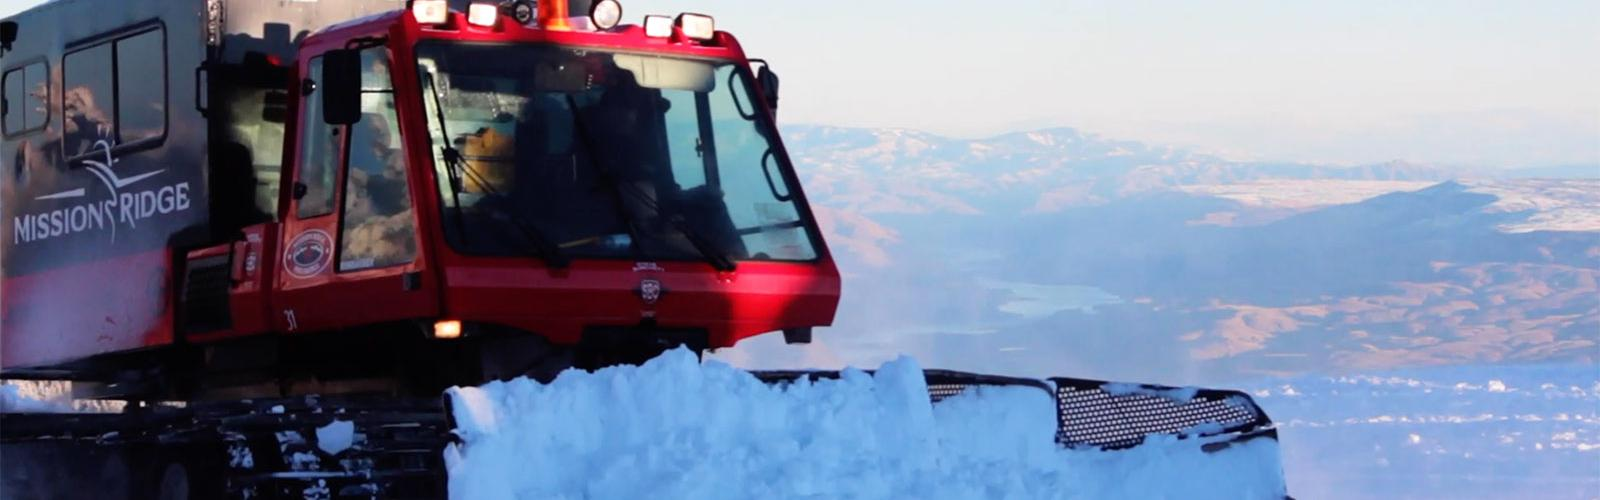 A snowcat pushing snow at the top of the mountain with the valley view in the background